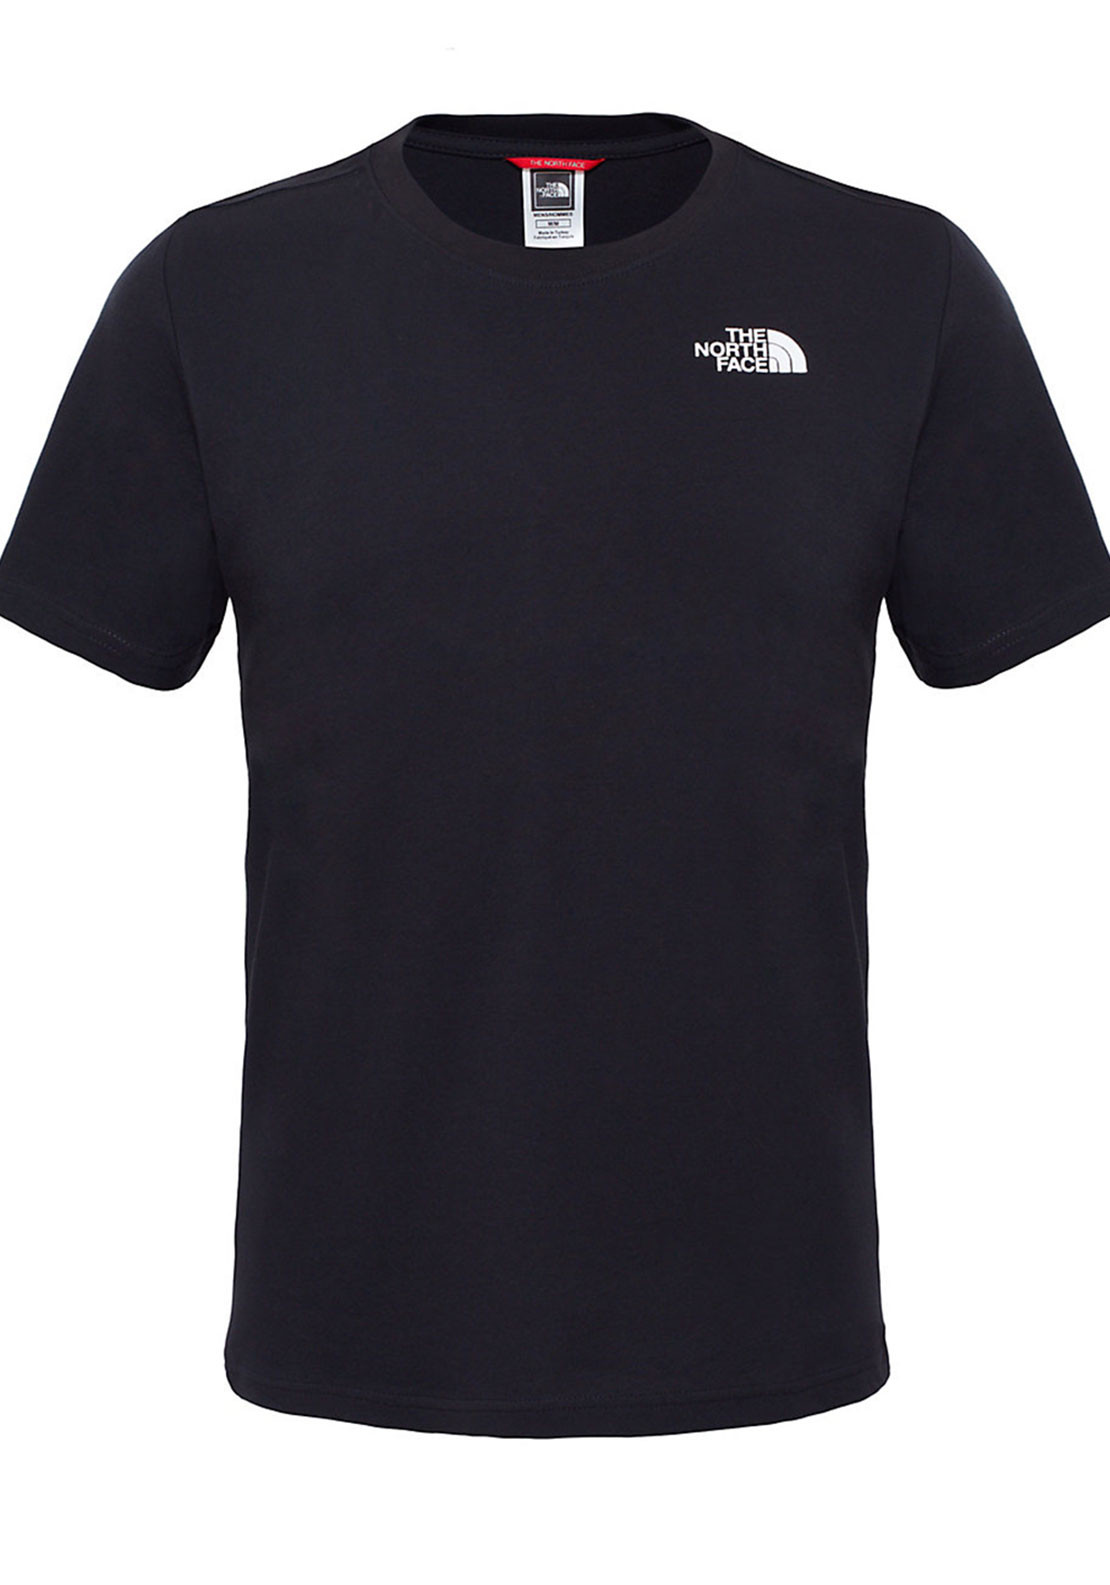 The North Face Mens Red Box Tee, Black